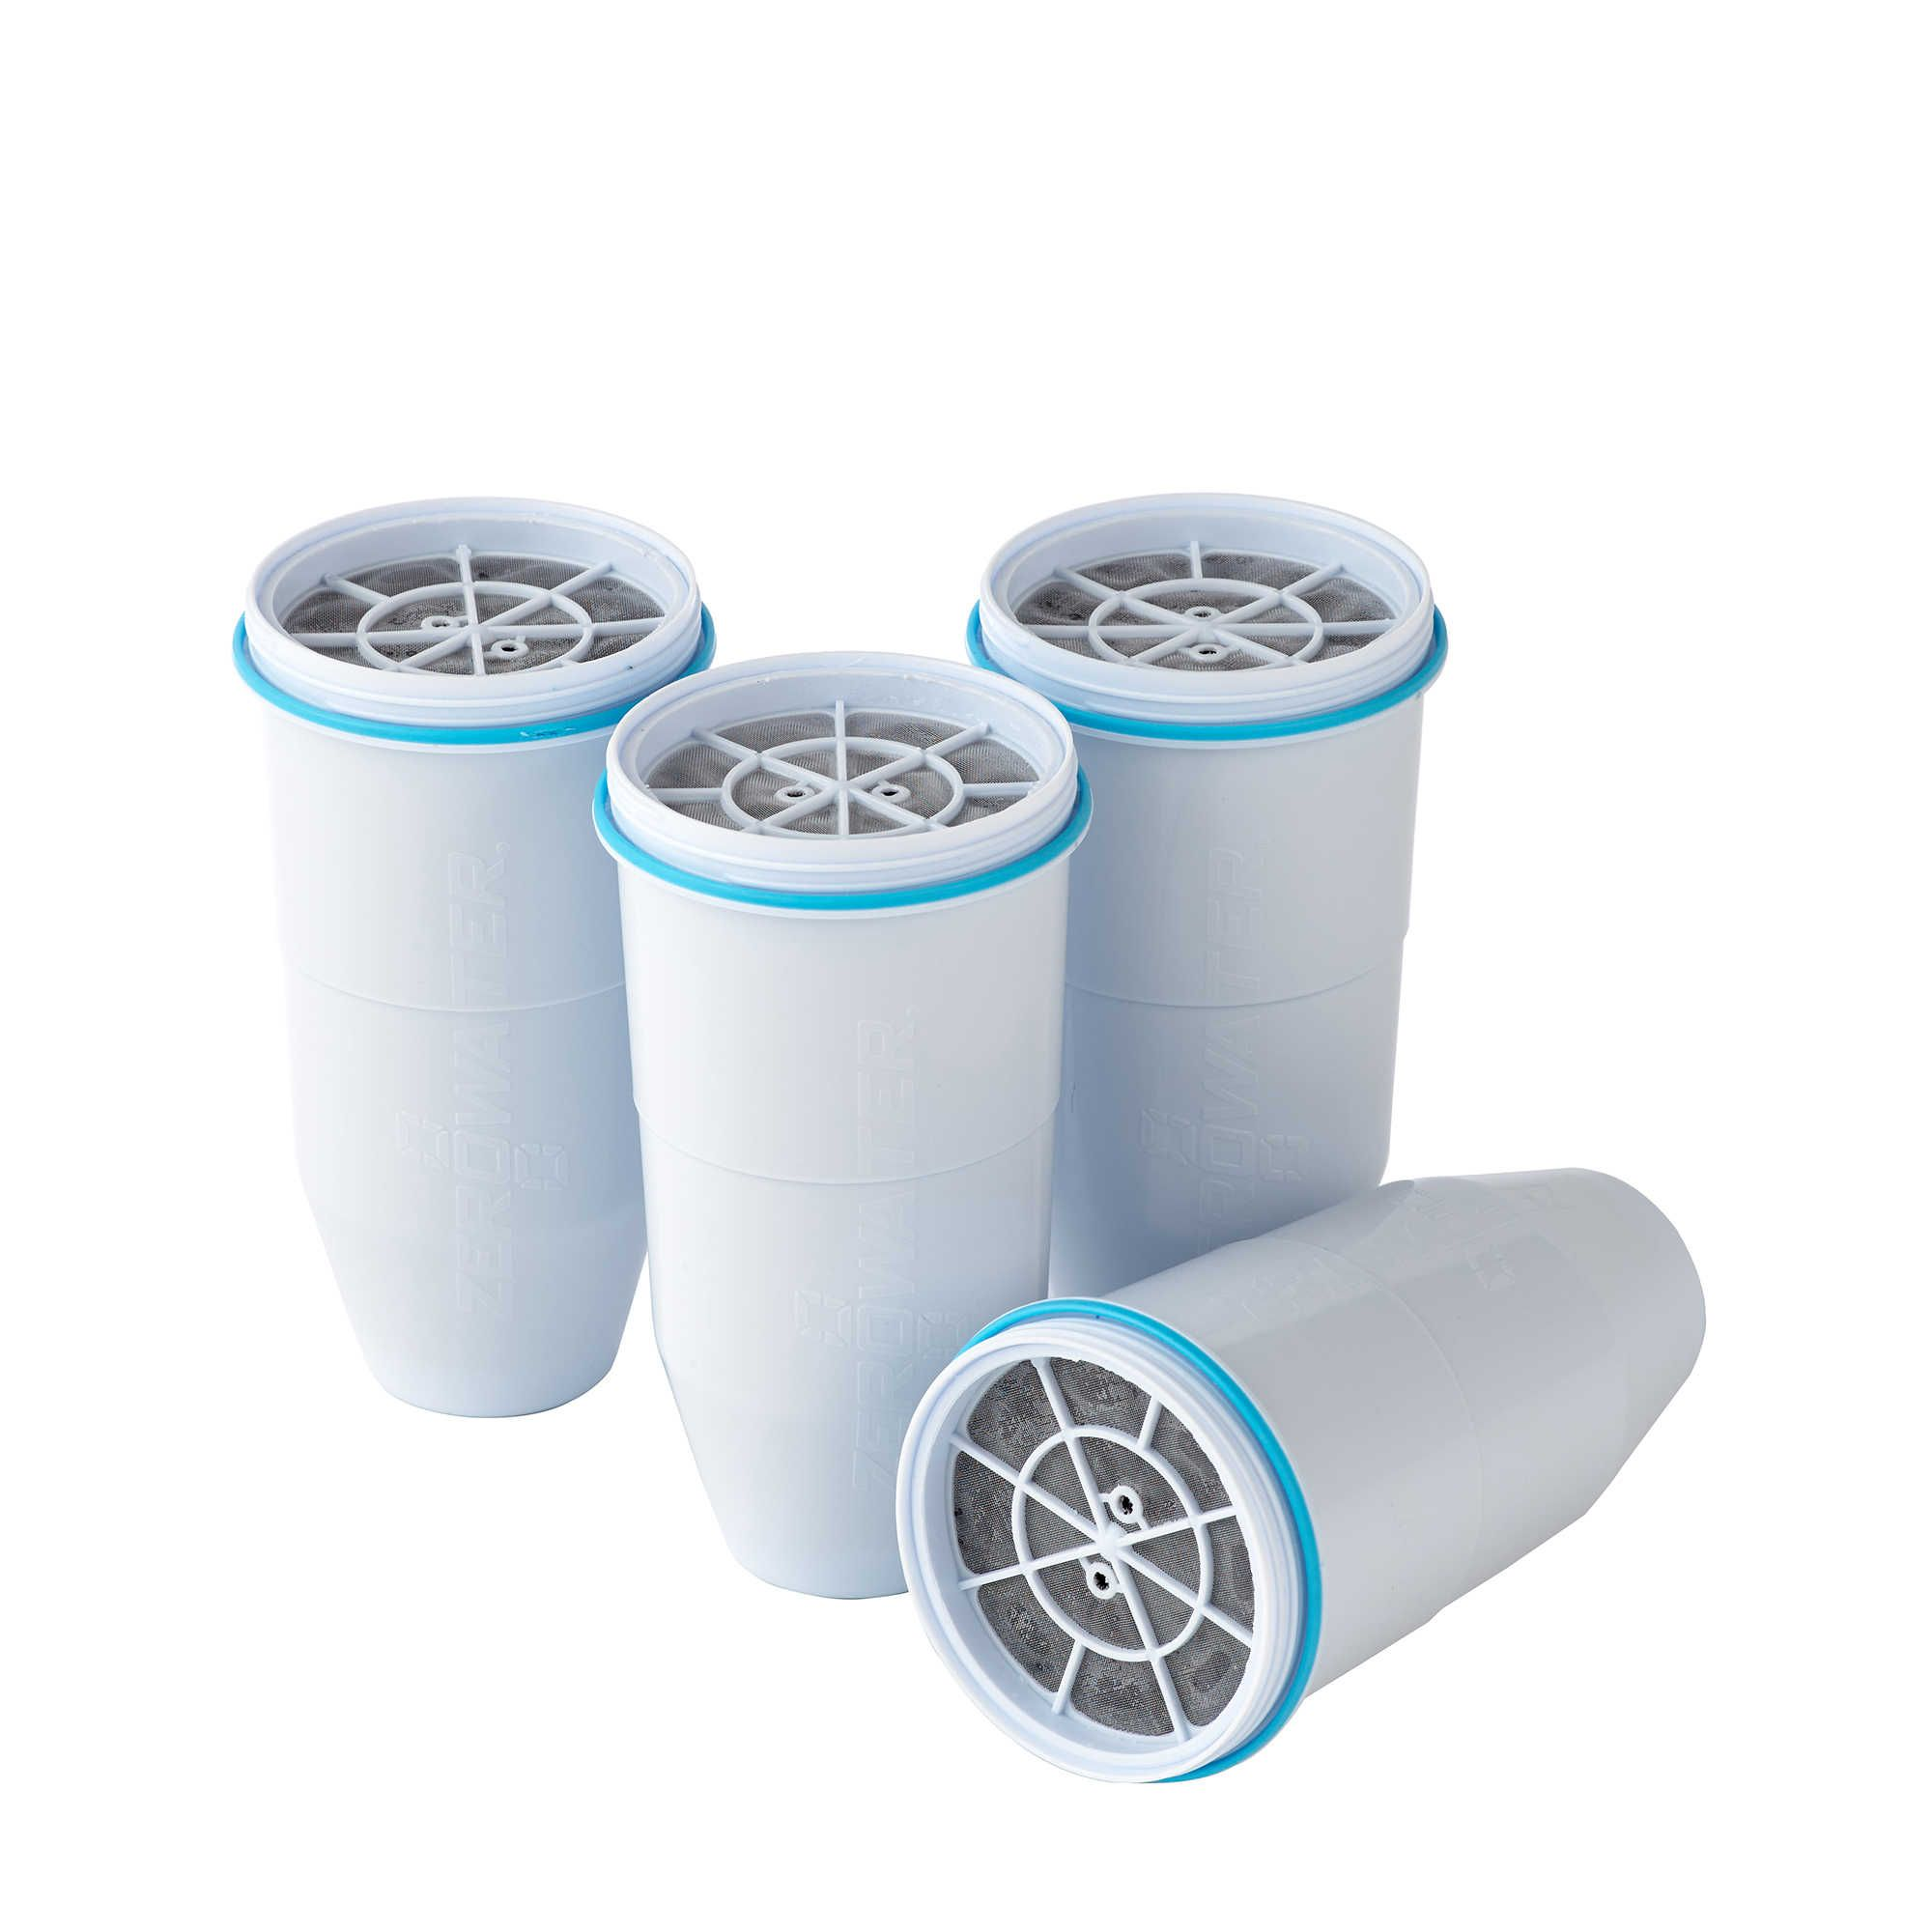 water filters & dispensers | water cooler filters - bed bath & beyond